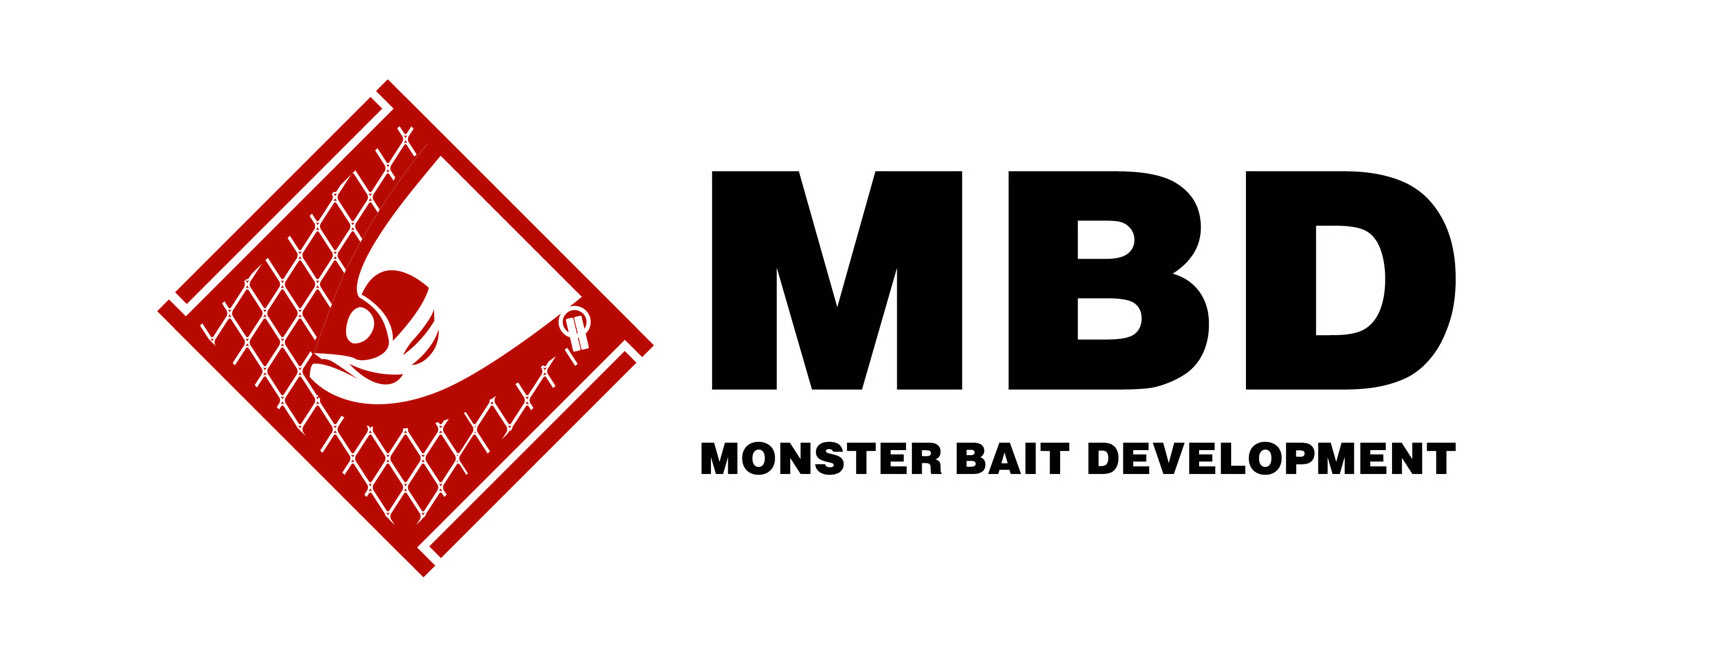 MONSTER BAIT DEVELOPMENT